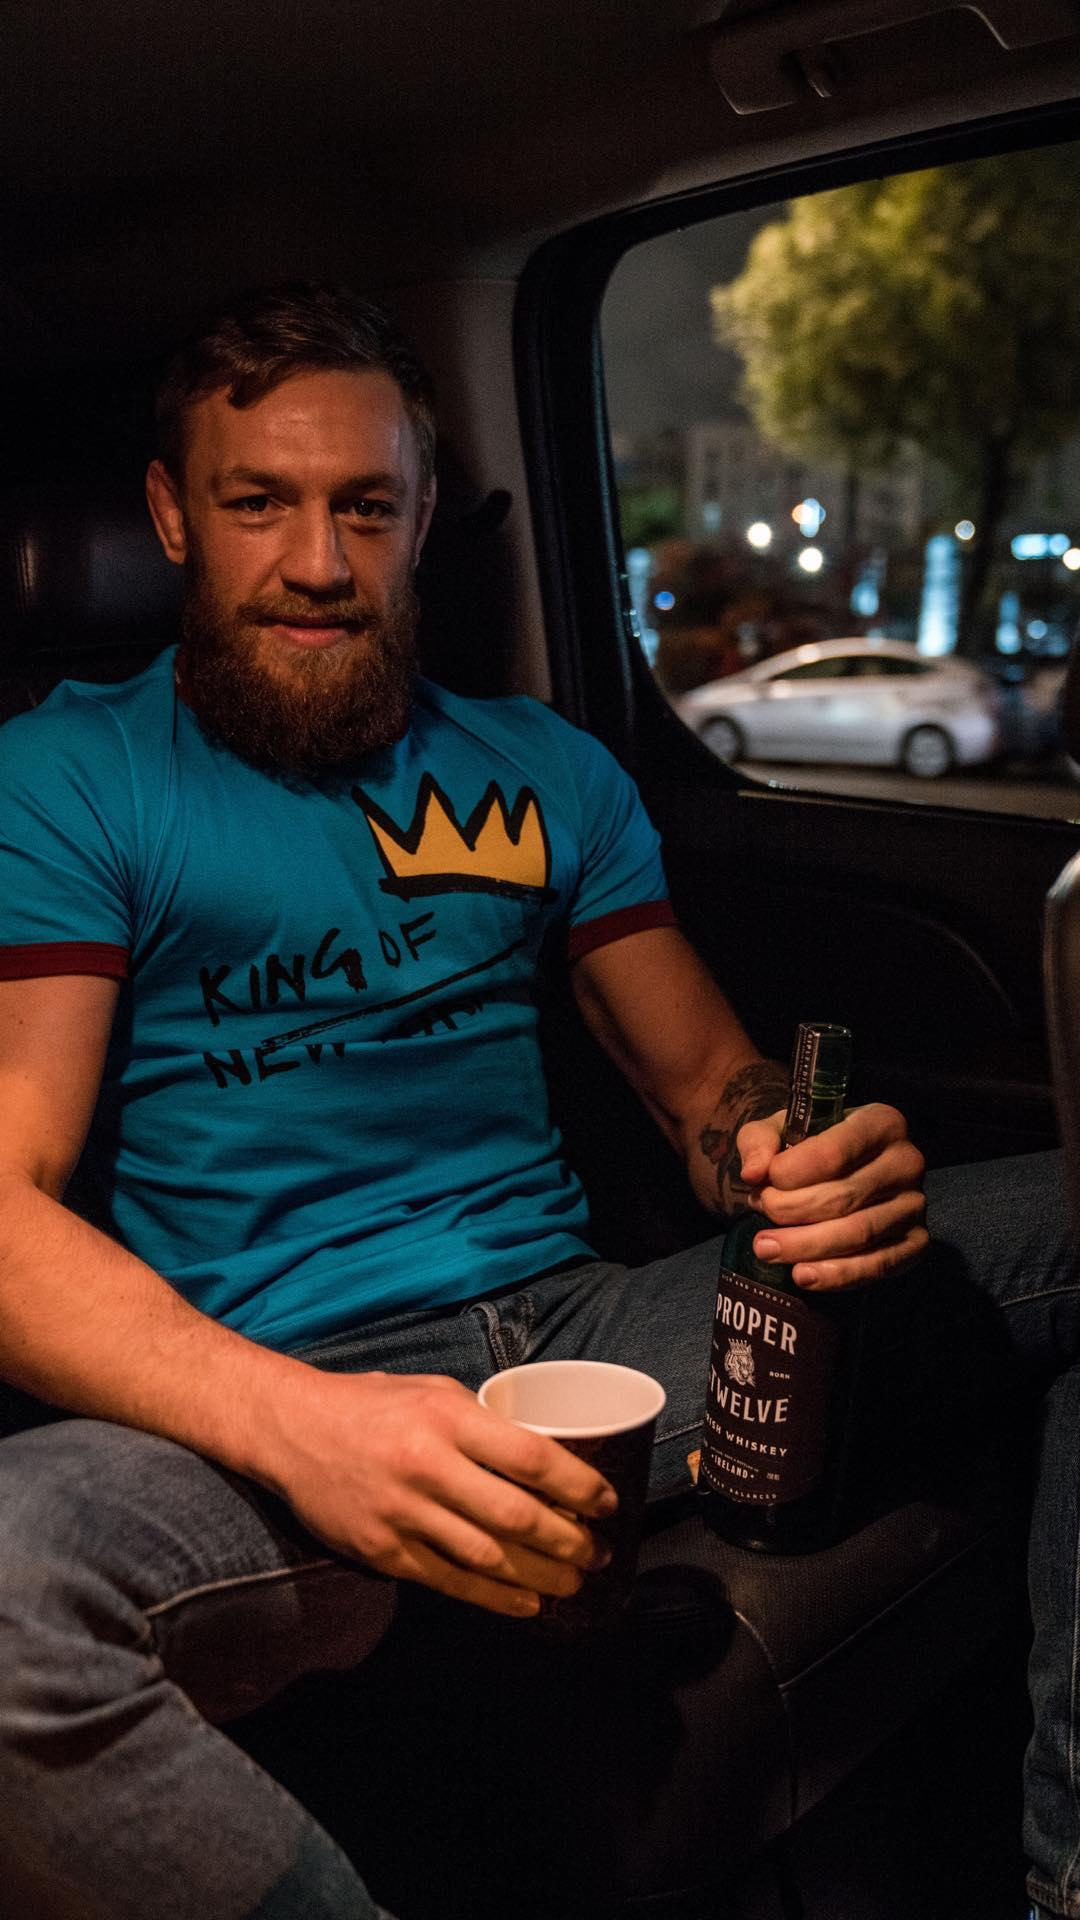 UFC star Conor McGregor was enjoying his new whiskey